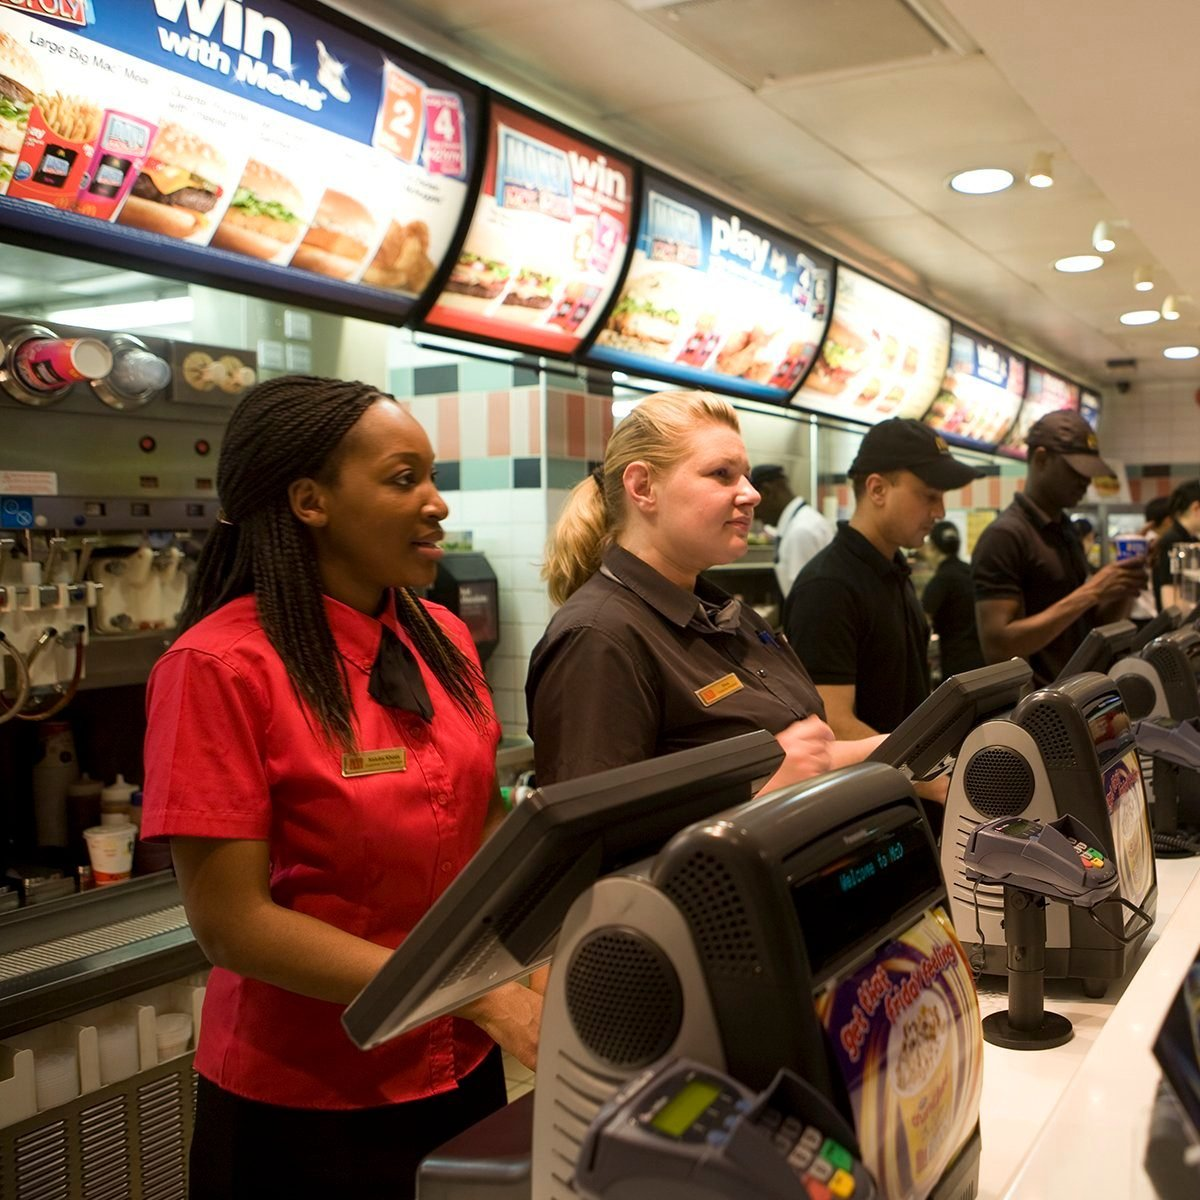 MdDonald's workers, dressed in their new more stylish uniforms take orders from customers at the new trendy coffee bar style ambience and design at the Cannon Street branch of McDonalds in the City of London. This is one of the flagship branches for this new design as the corporation takes on the process of 're-imaging' the fast food chain. This redesign, with new colours: khaki, lime, orange and russet, in a vibrant mixture of geometrics, lines and swooshes has been created for McDonald's by French Designer, Philippe Avanzi. It includes comfortable easy-chairs and stools, drop down lighting and in total, a whole new feel. This is part of a new global strategy to give McDonalds branches in different countries a uniquely local character, both in terms of the decor and some of the food served. (Photo by Gideon Mendel/Corbis via Getty Images)